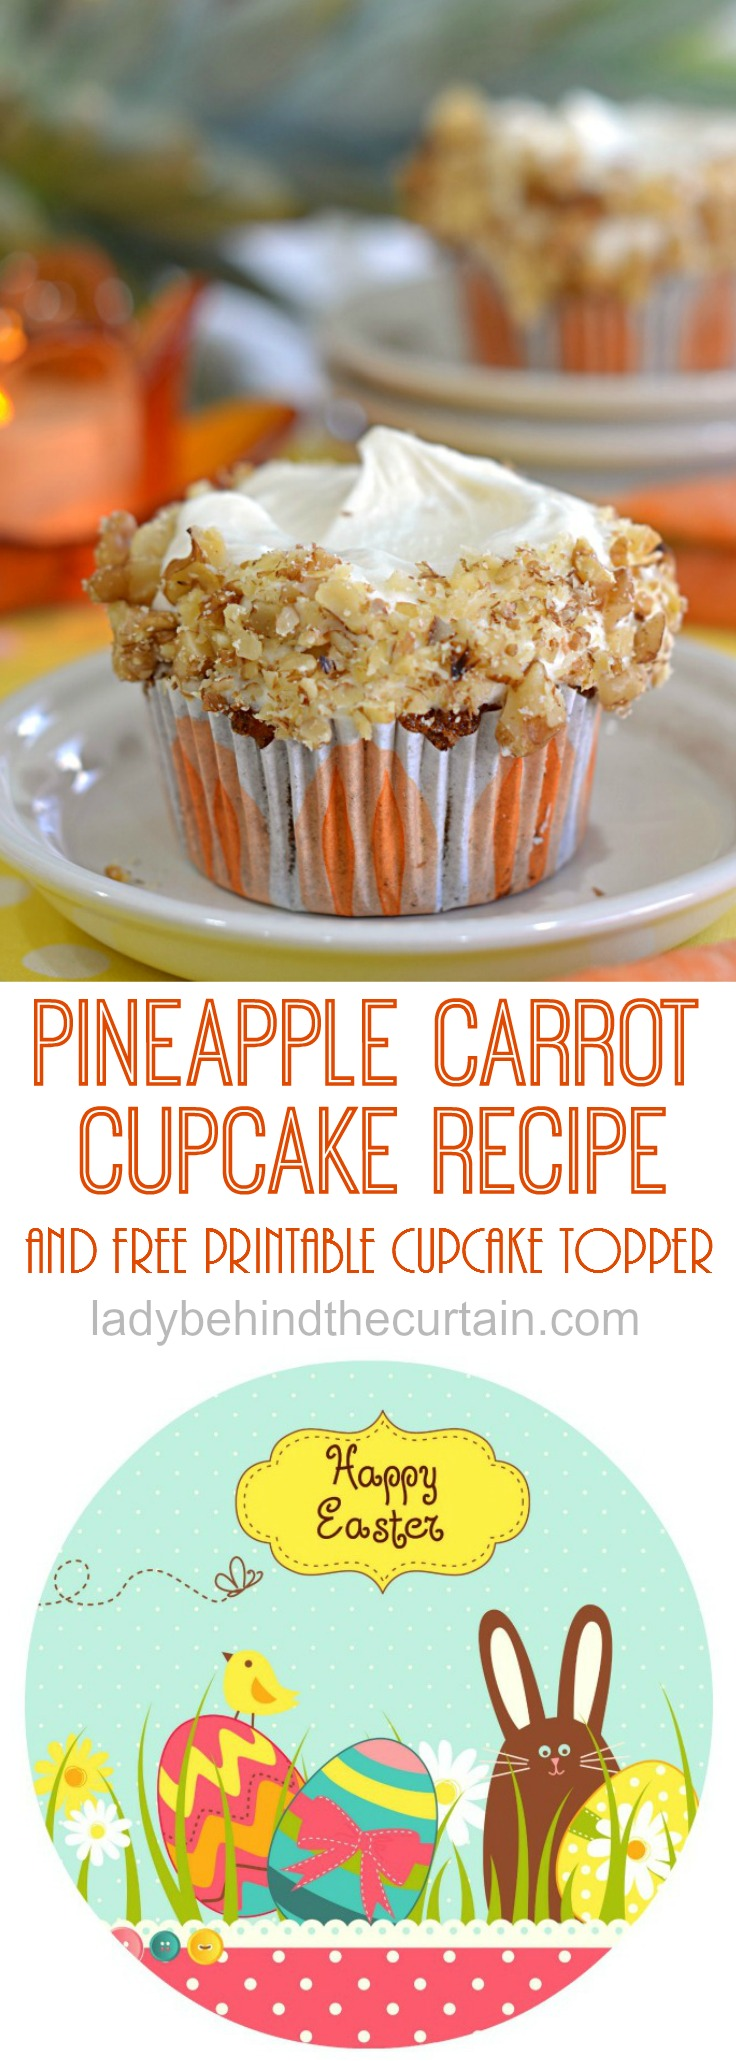 Pineapple carrot cake recipes easy